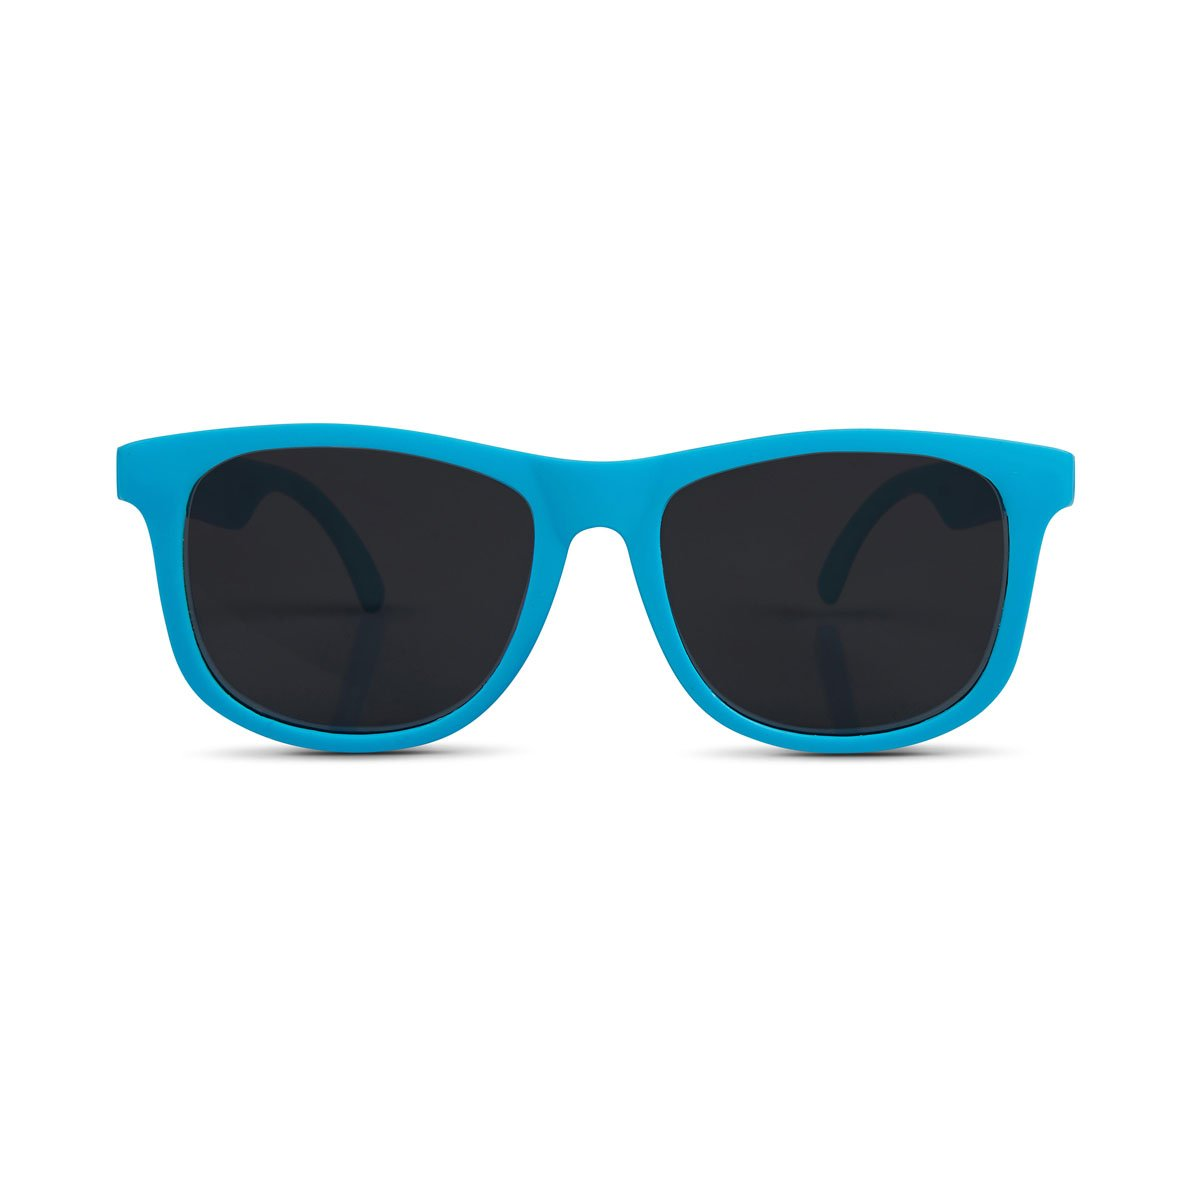 Hipsterkid Classics Baby Sunglasses - Blue (0-2 years)